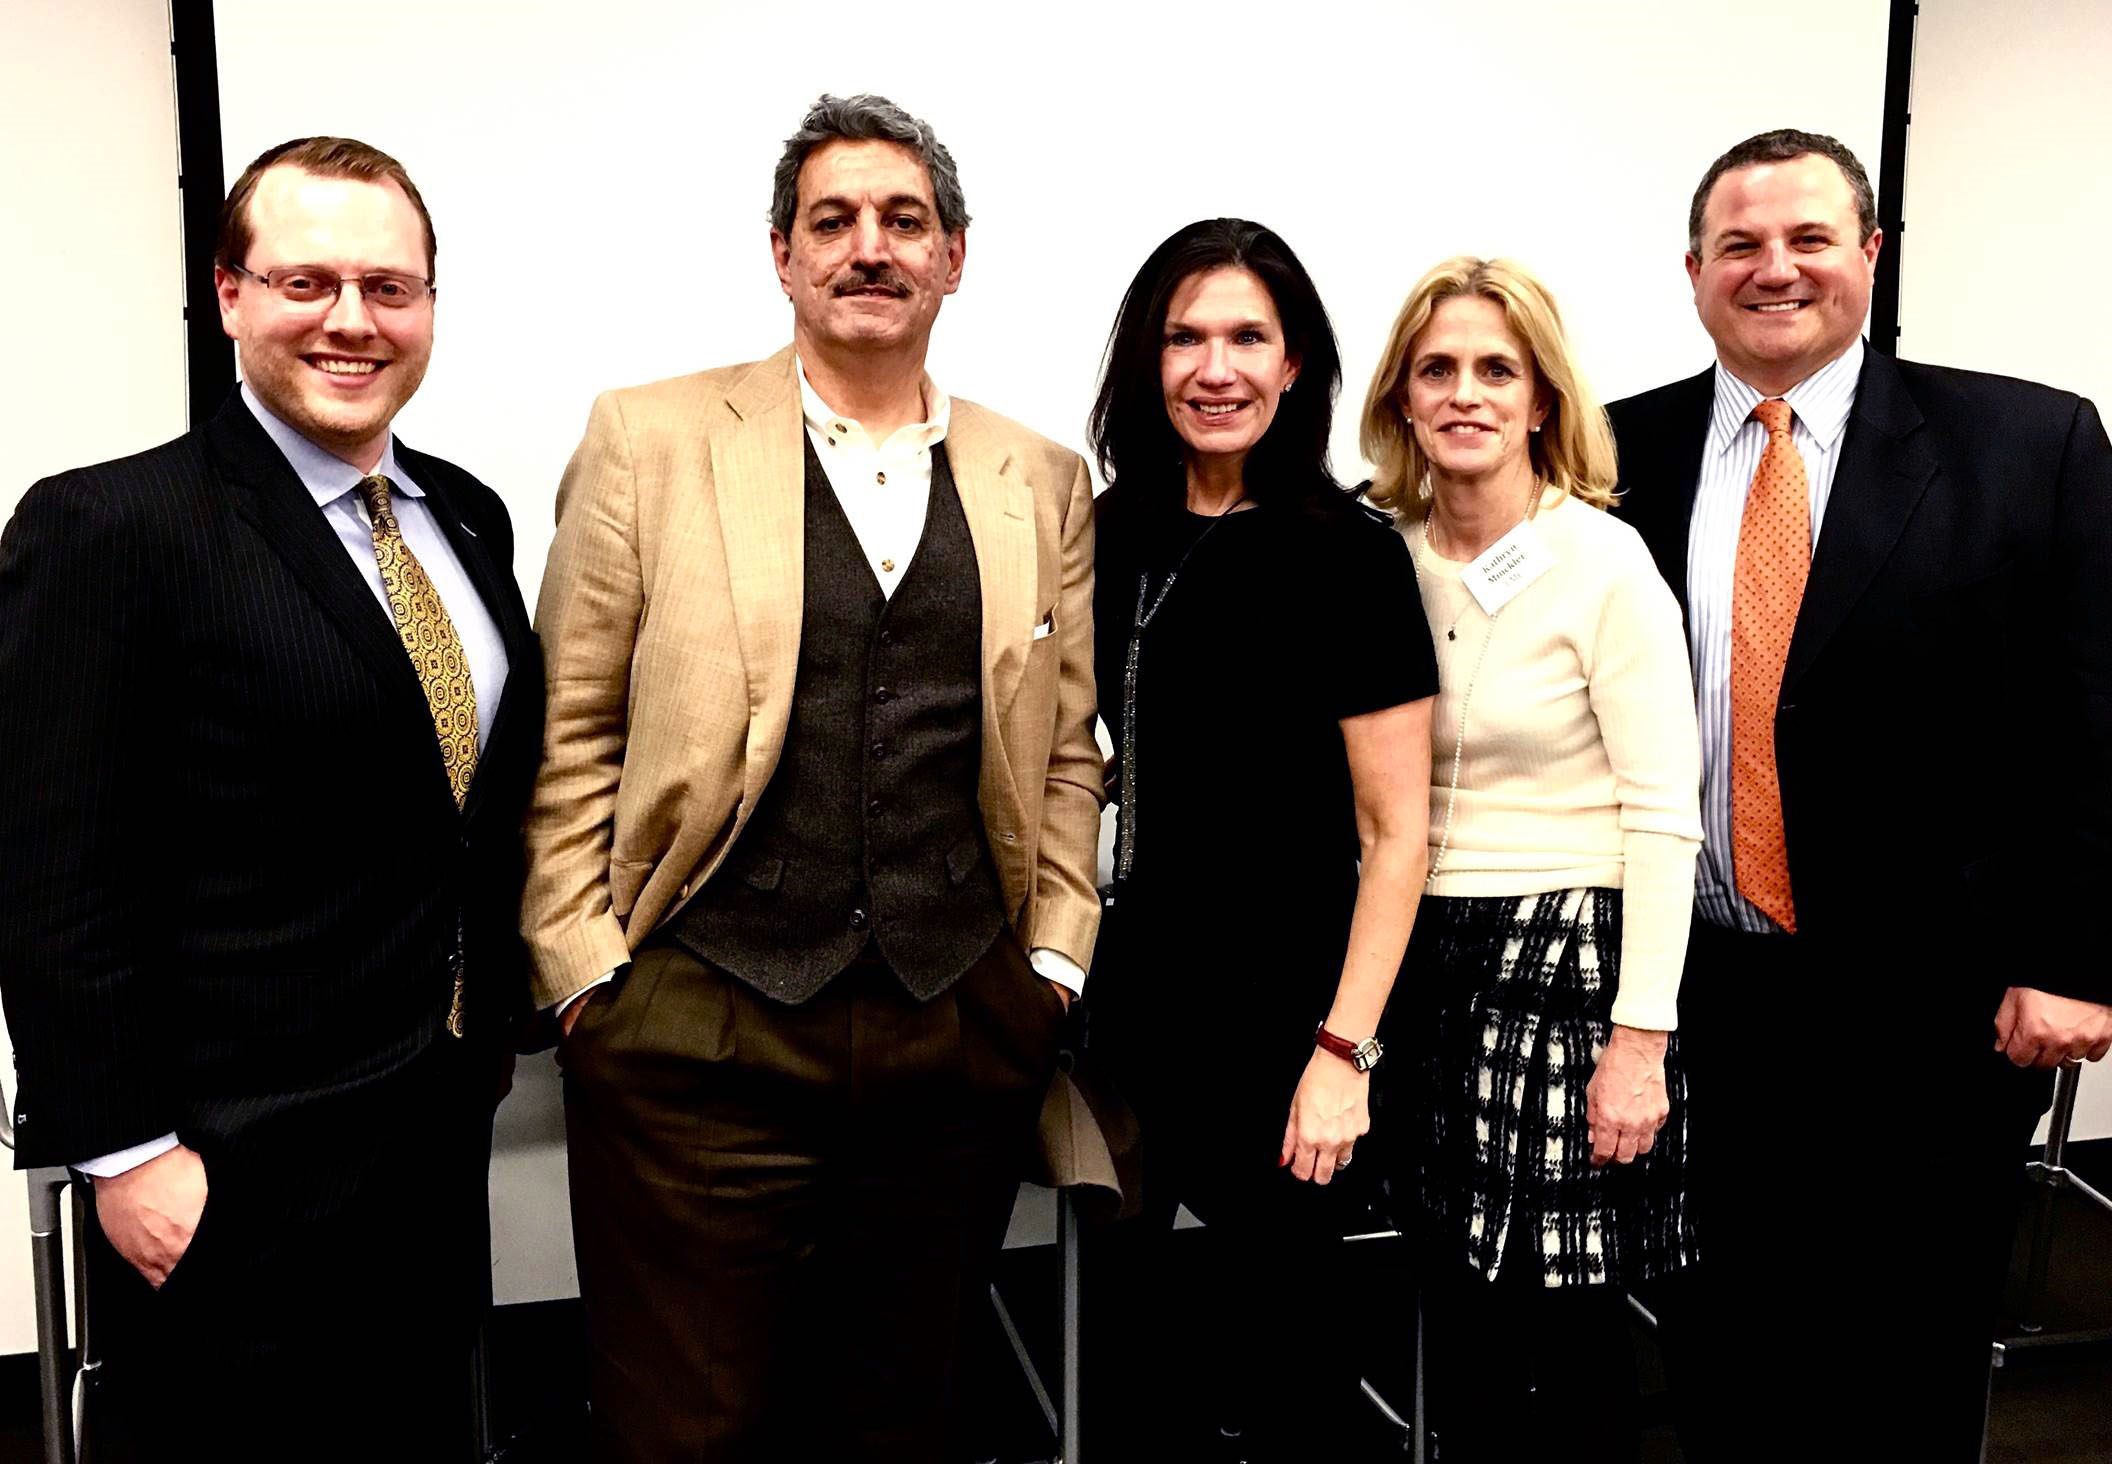 Ed Delia - Featured Panelist at the Luxury Marketing Council meeting in NY